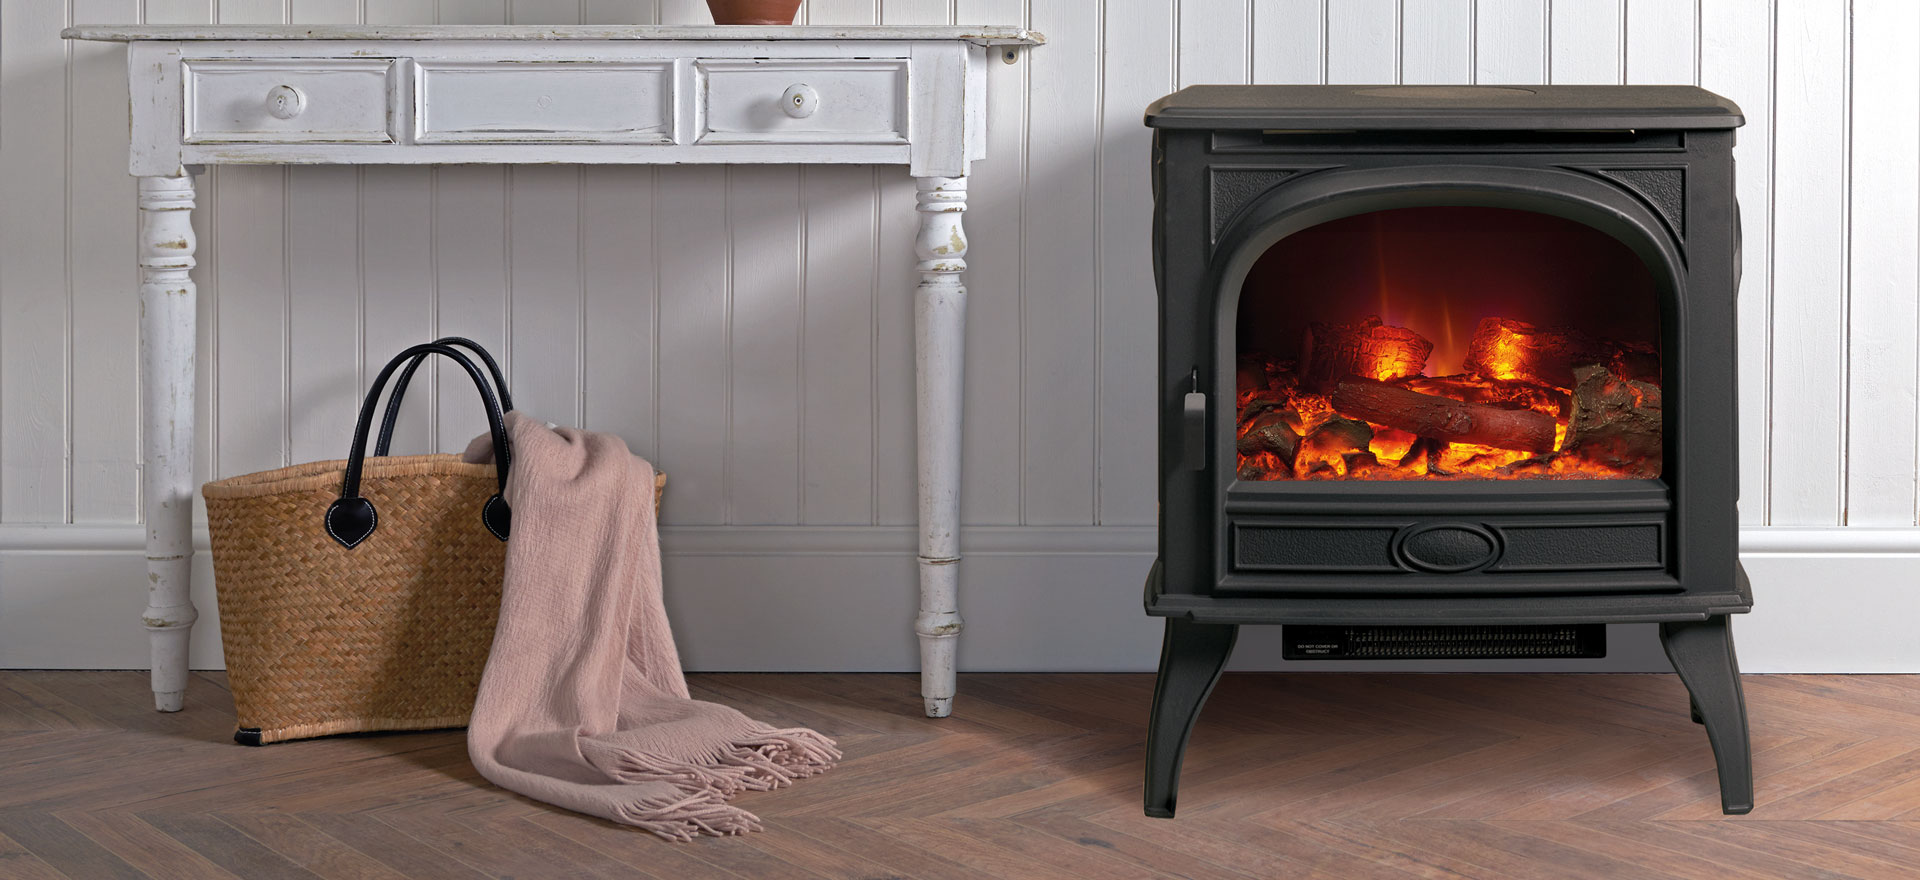 What are the main considerations when choosing an electric stove?